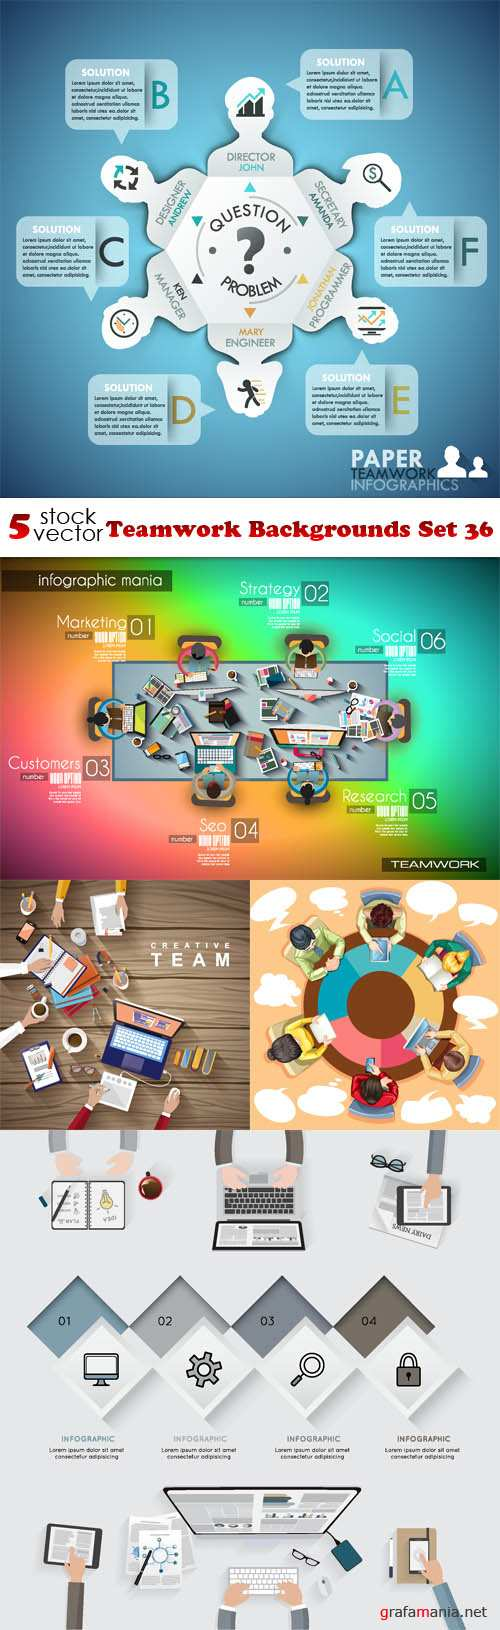 Vectors - Teamwork Backgrounds Set 36